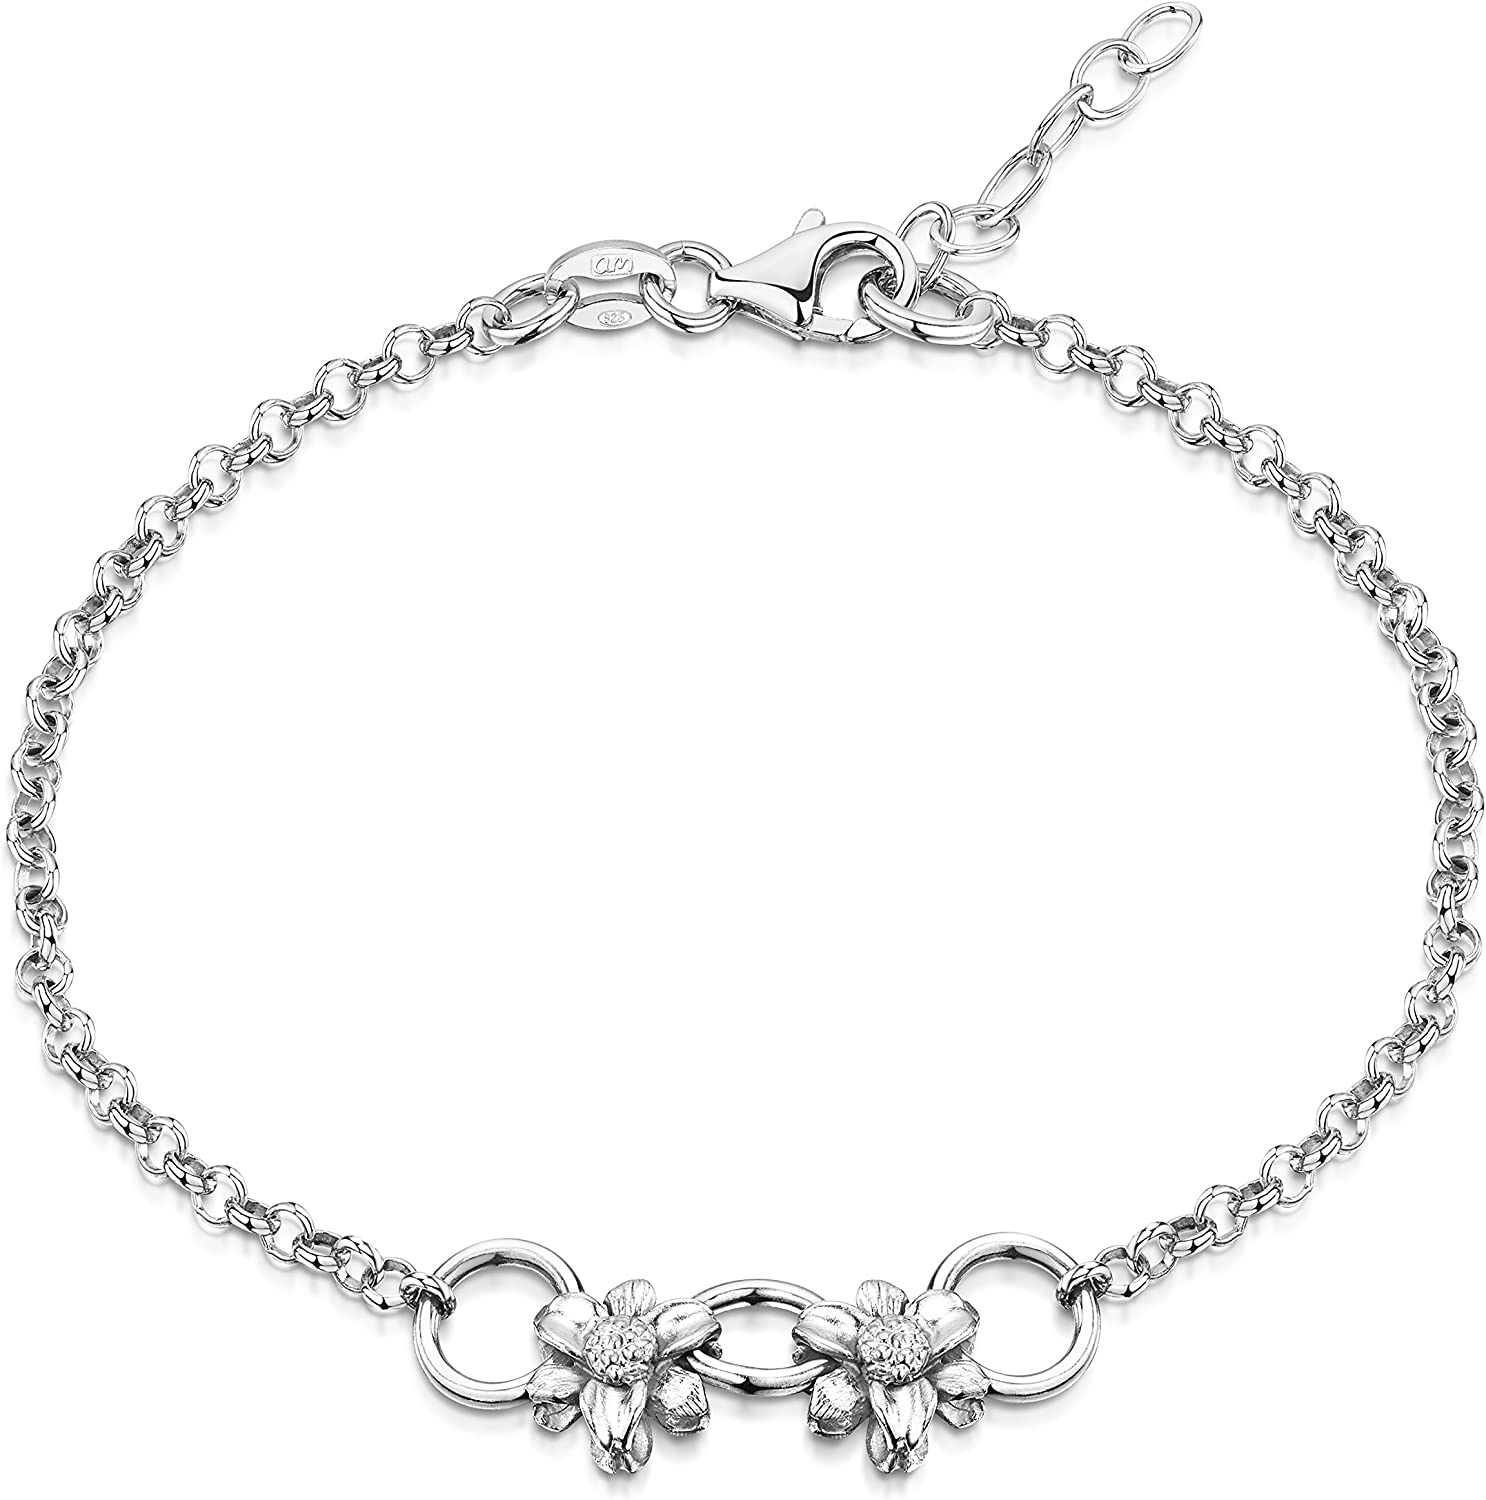 Chains with Hearts and Flowers Flexible Fit Amberta 925 Sterling Silver Adjustable Bracelet 7 to 8 inch